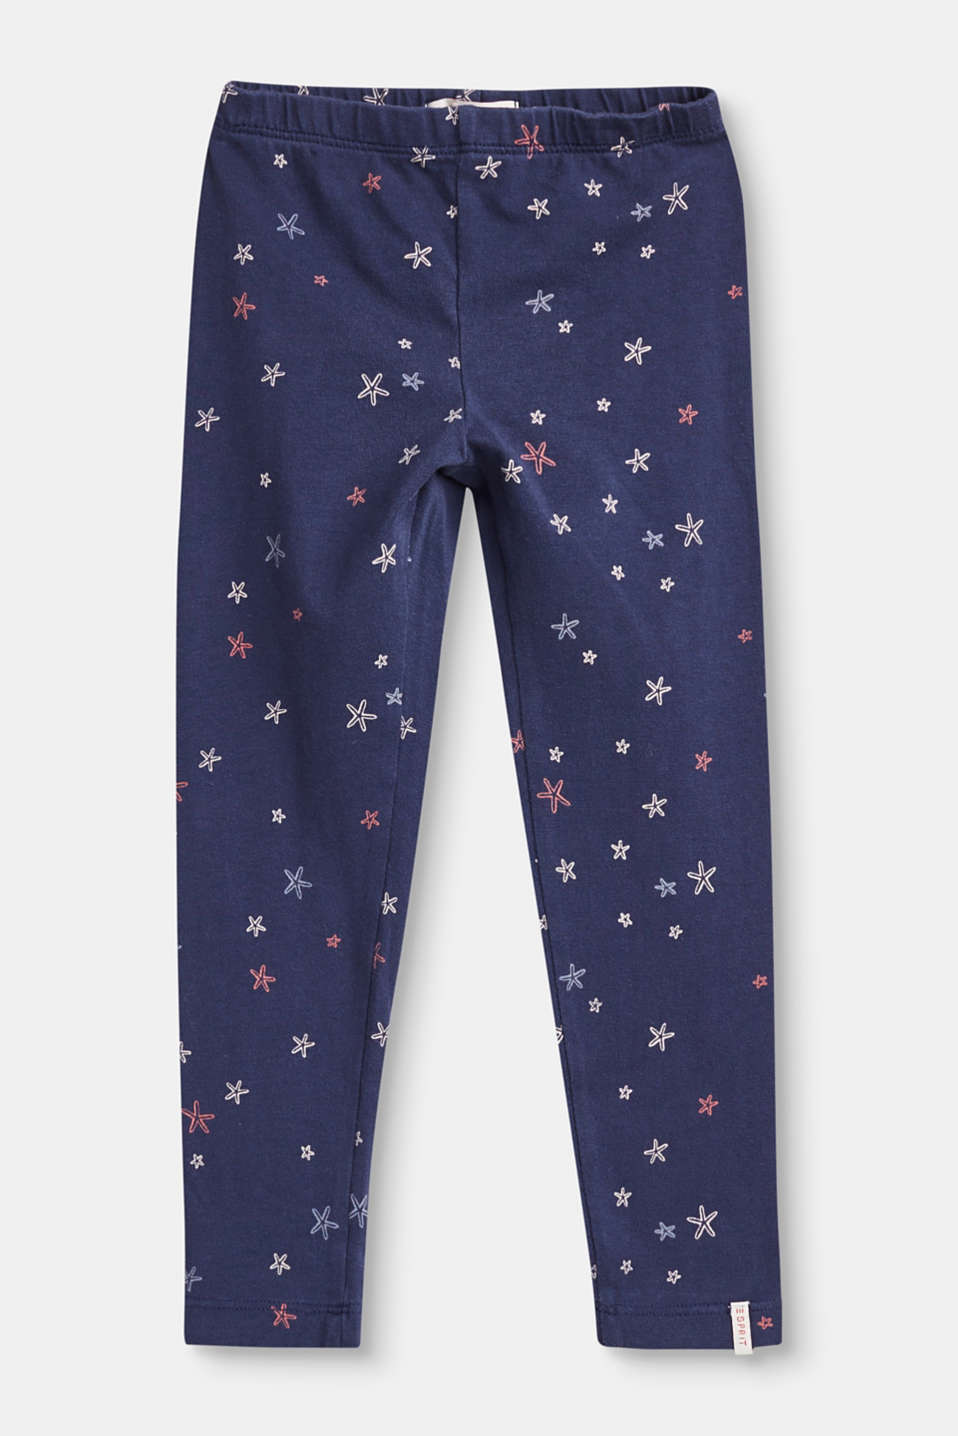 Esprit - Printed stretch cotton leggings